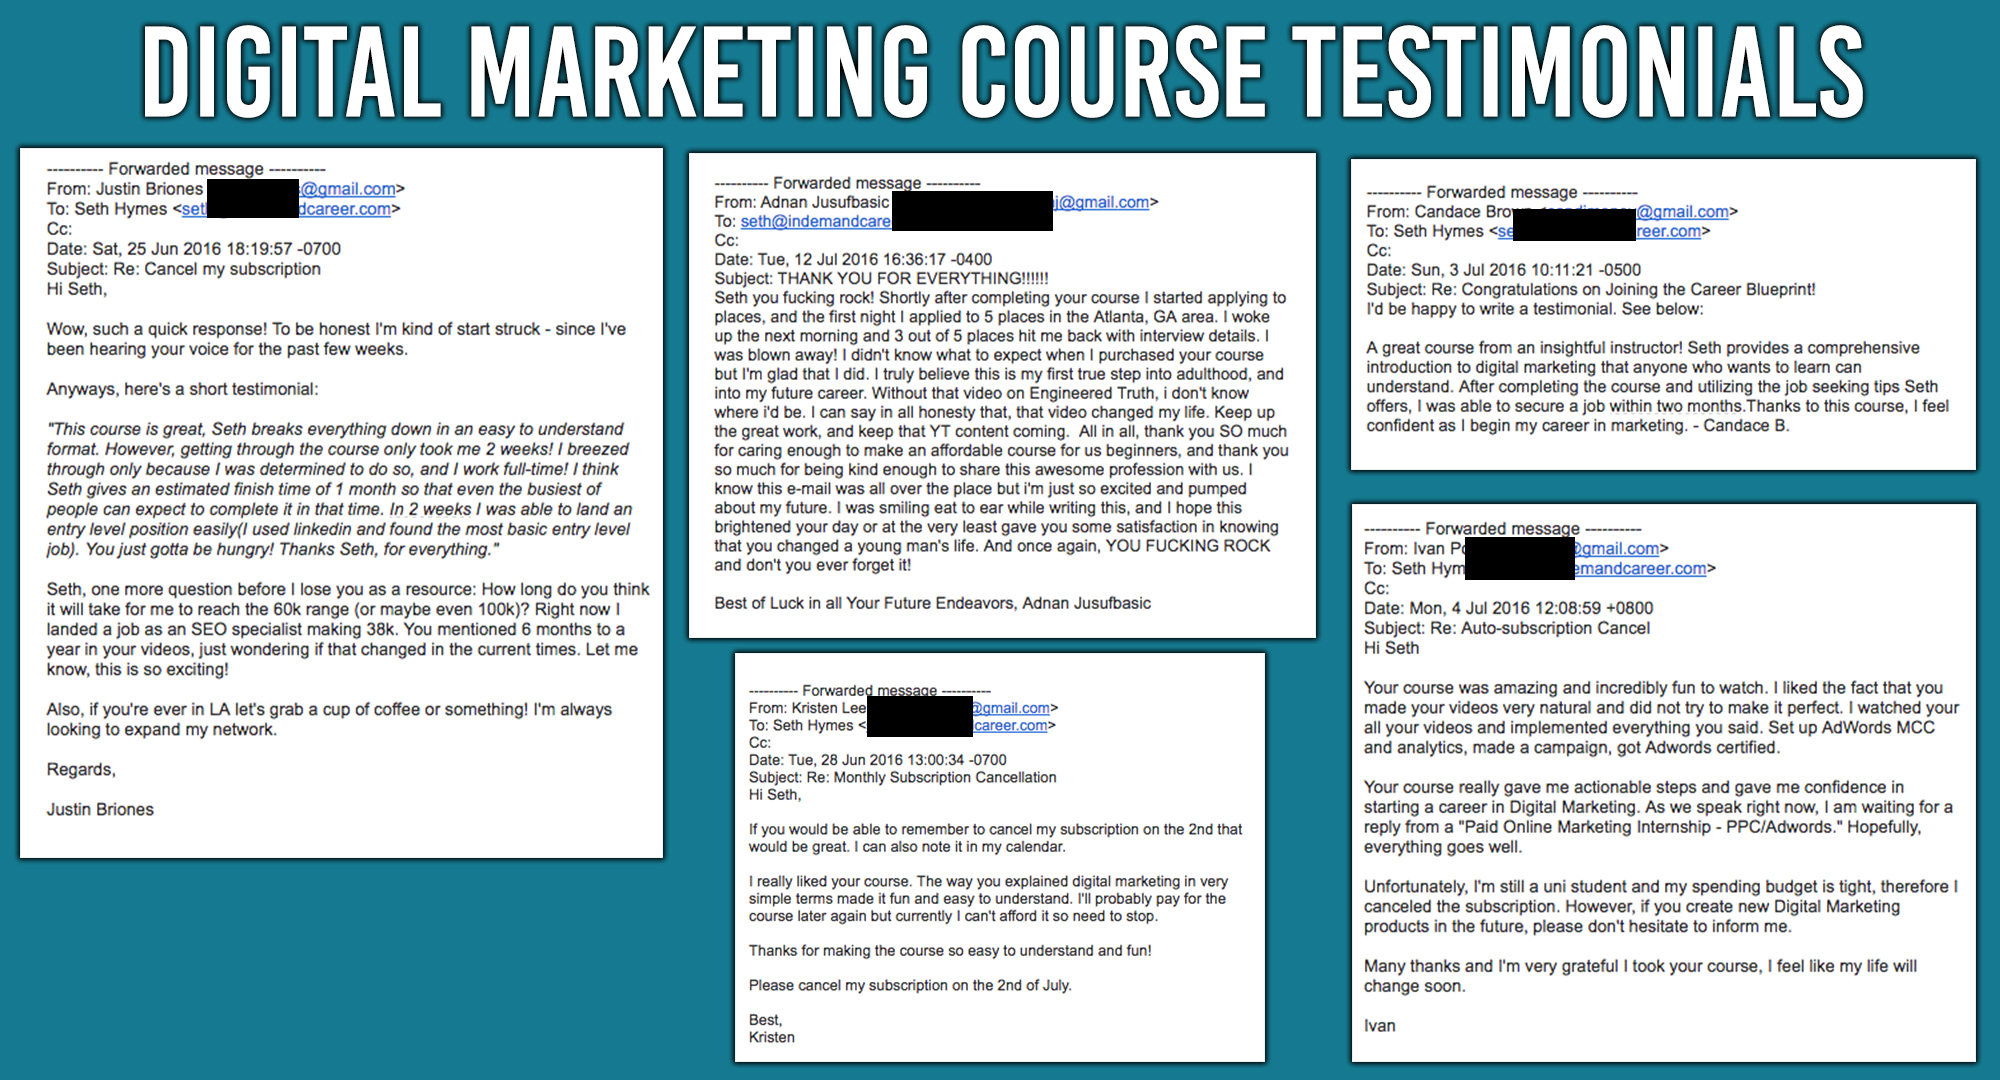 Seths digital marketing course is actually helping people get jobs digital marketing testimonials malvernweather Gallery